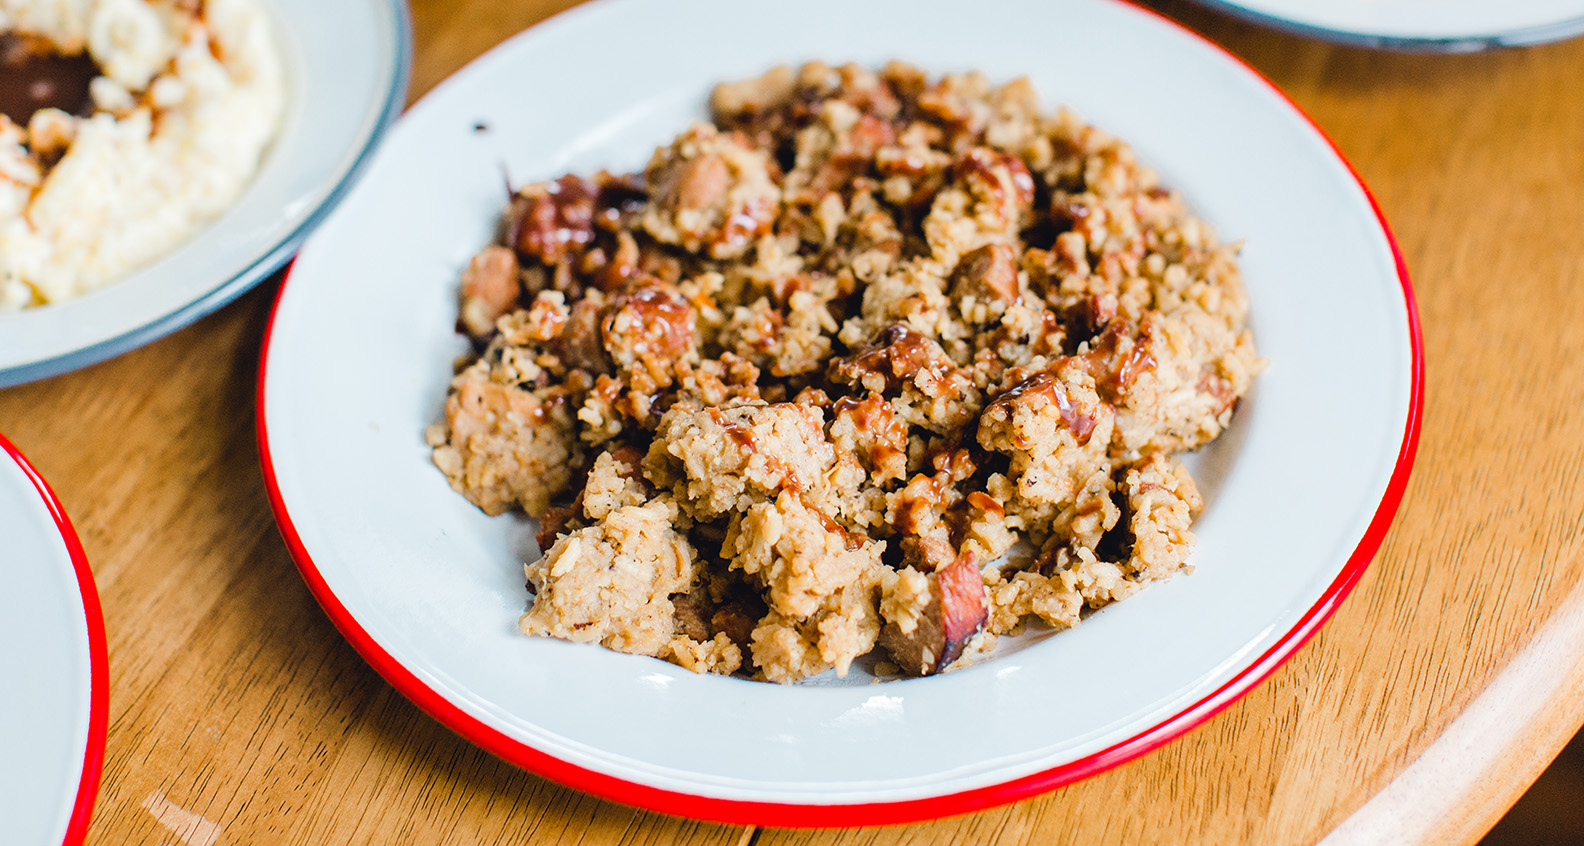 Chocolate-covered jambalaya